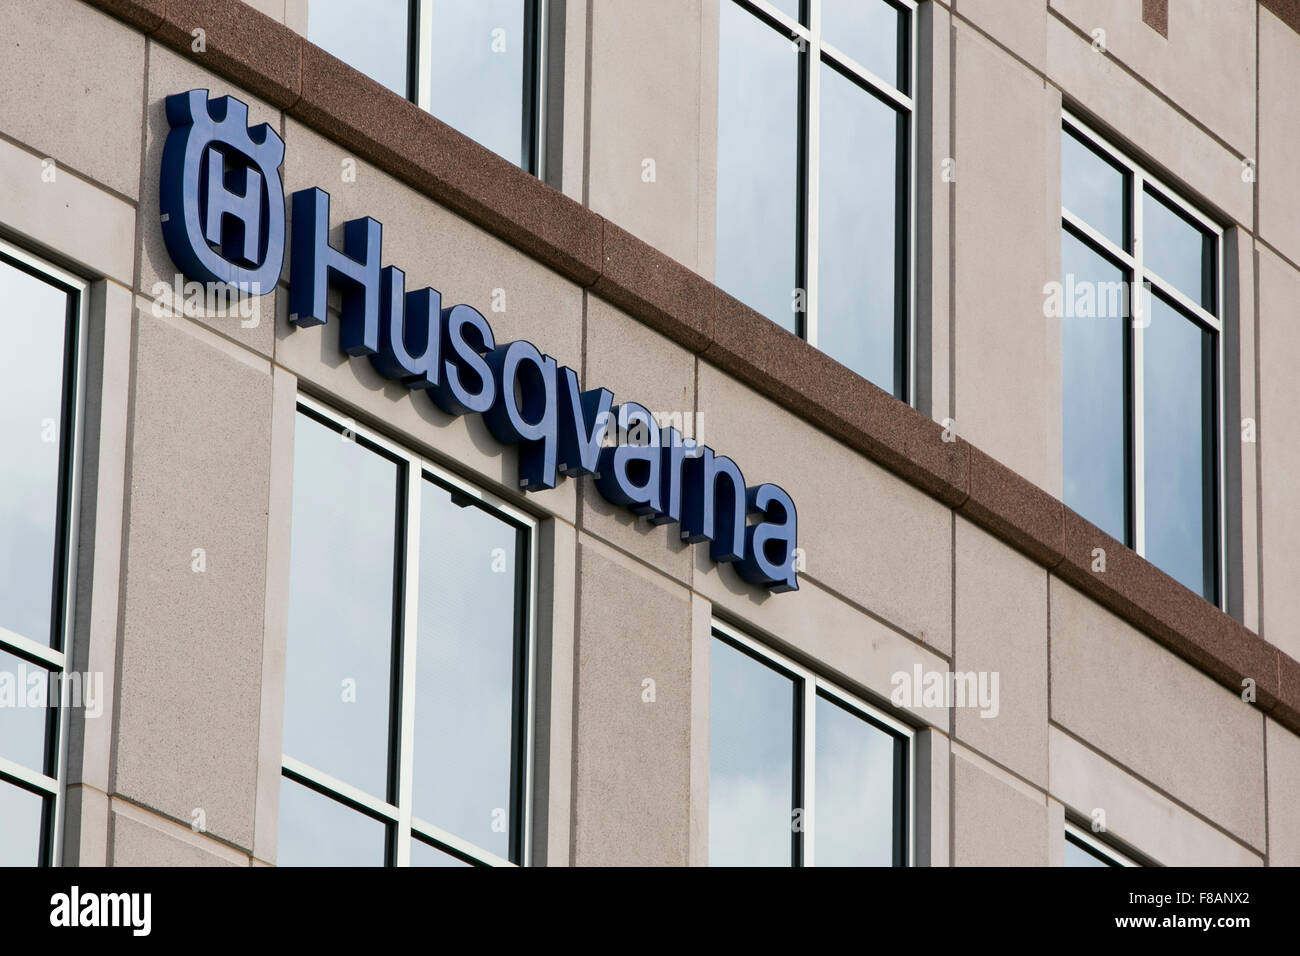 A logo sign outside of a facility occupied by The Husqvarna Group in Charlotte, North Carolina on November 28, 2015. - Stock Image